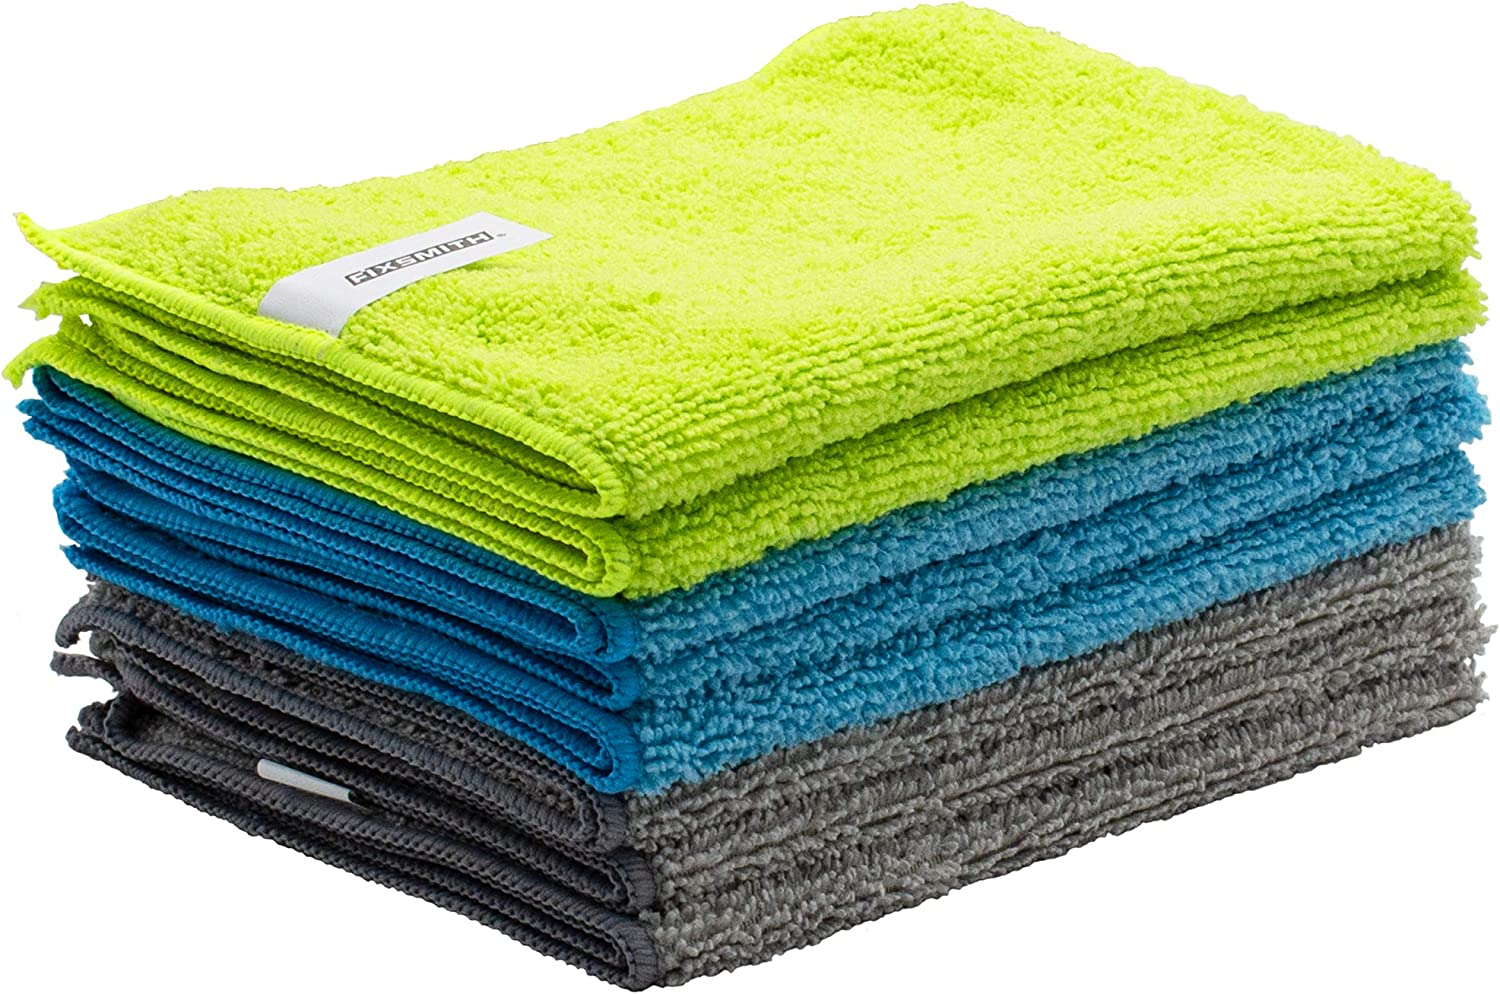 FIXSMITH Microfiber Cleaning Cloth - Pack of 8, All-Purpose Cleaning Towels, Size: 12 x 16 in, Highly Absorbent Cleaning Rags, Lint-Free, Streak-Free Cleaning Cloths - Clean, Dust, Scrub, Polish